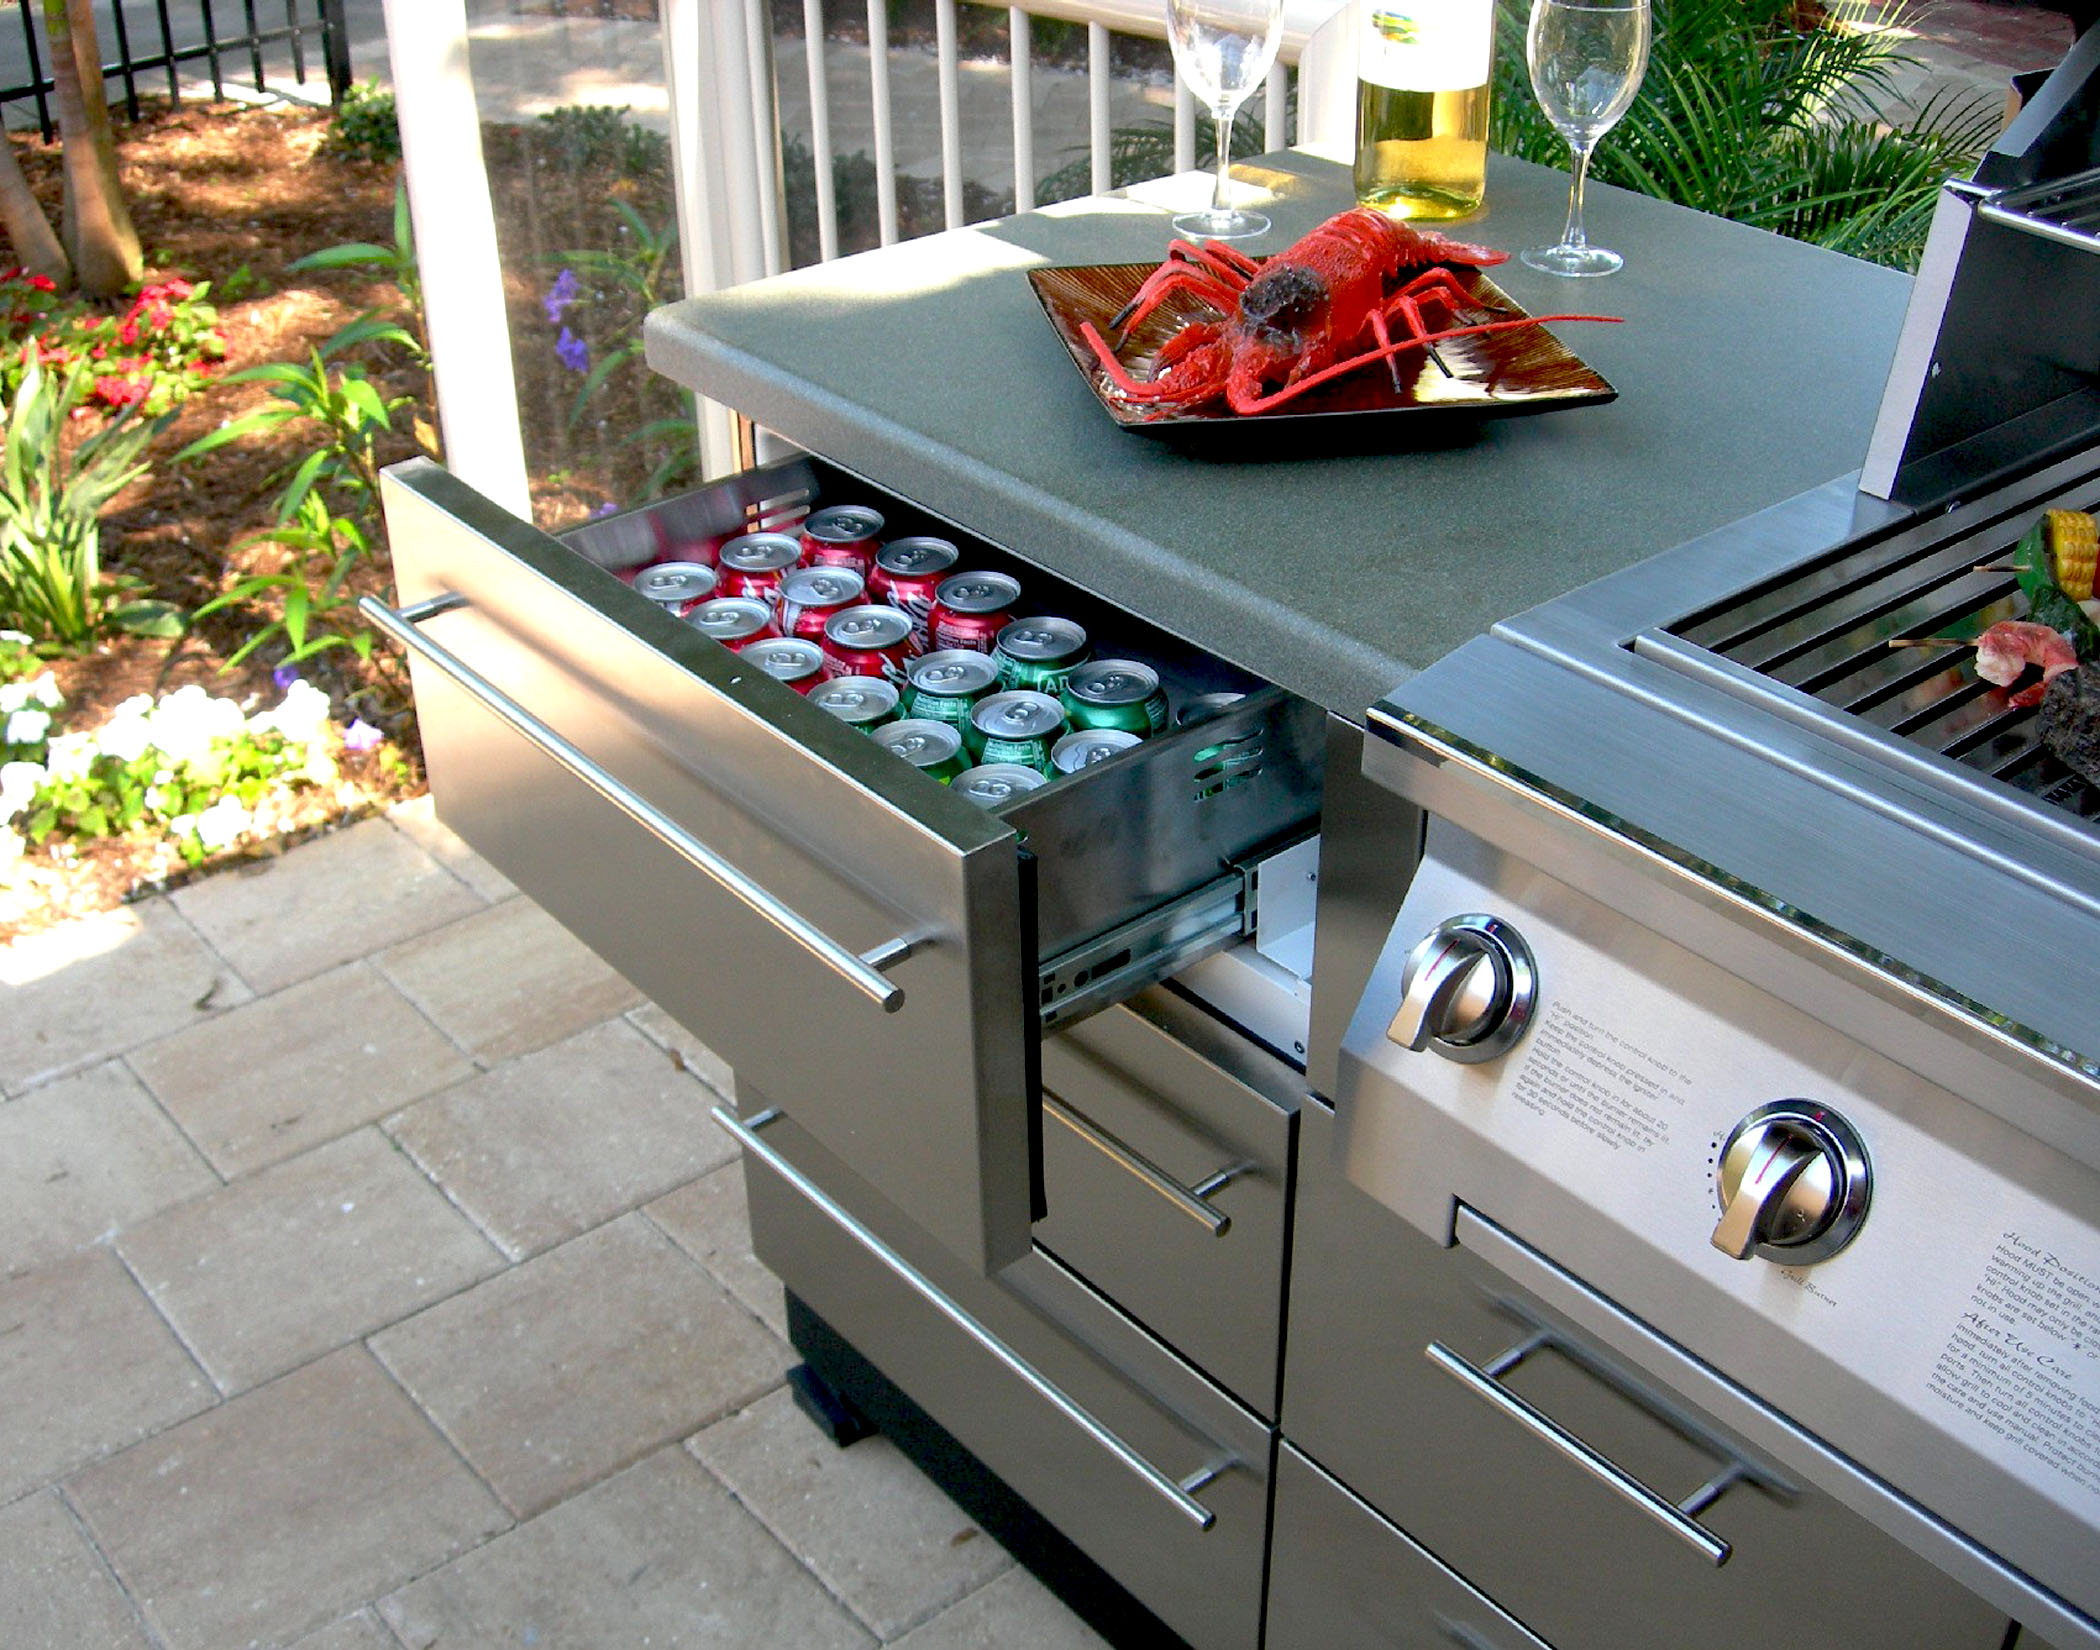 & Chadwick Outdoor KitchensStainless - Chadwick Outdoor Kitchens